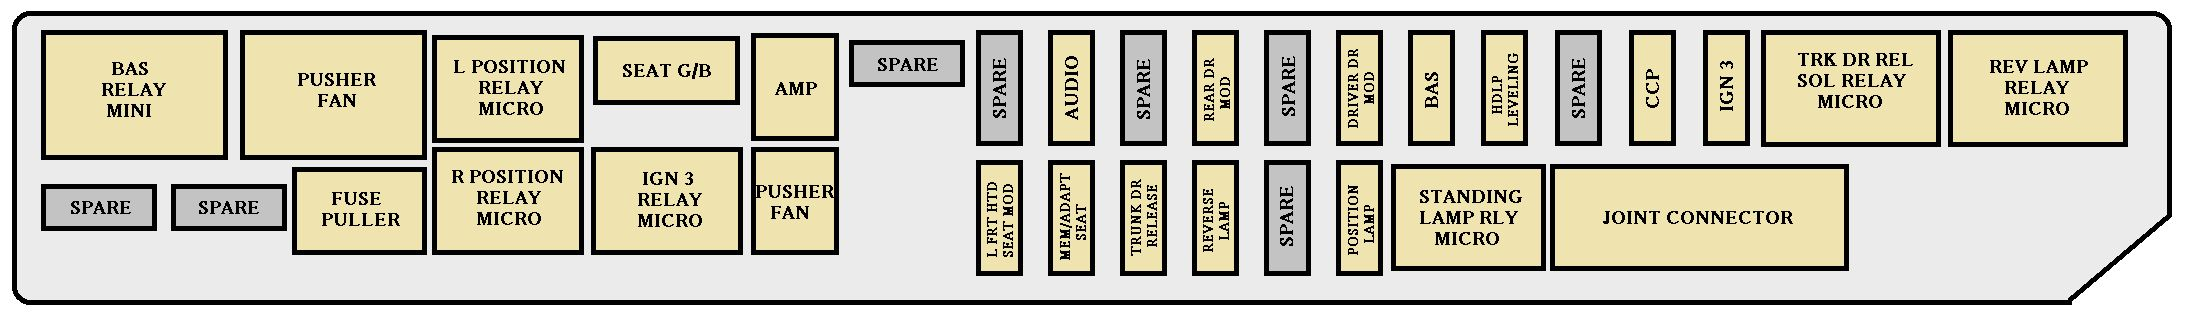 2004 f350 fuse box diagram kenwood kdc 152 wiring cadillac cts auto genius mk1 rear udnerseat driver s side